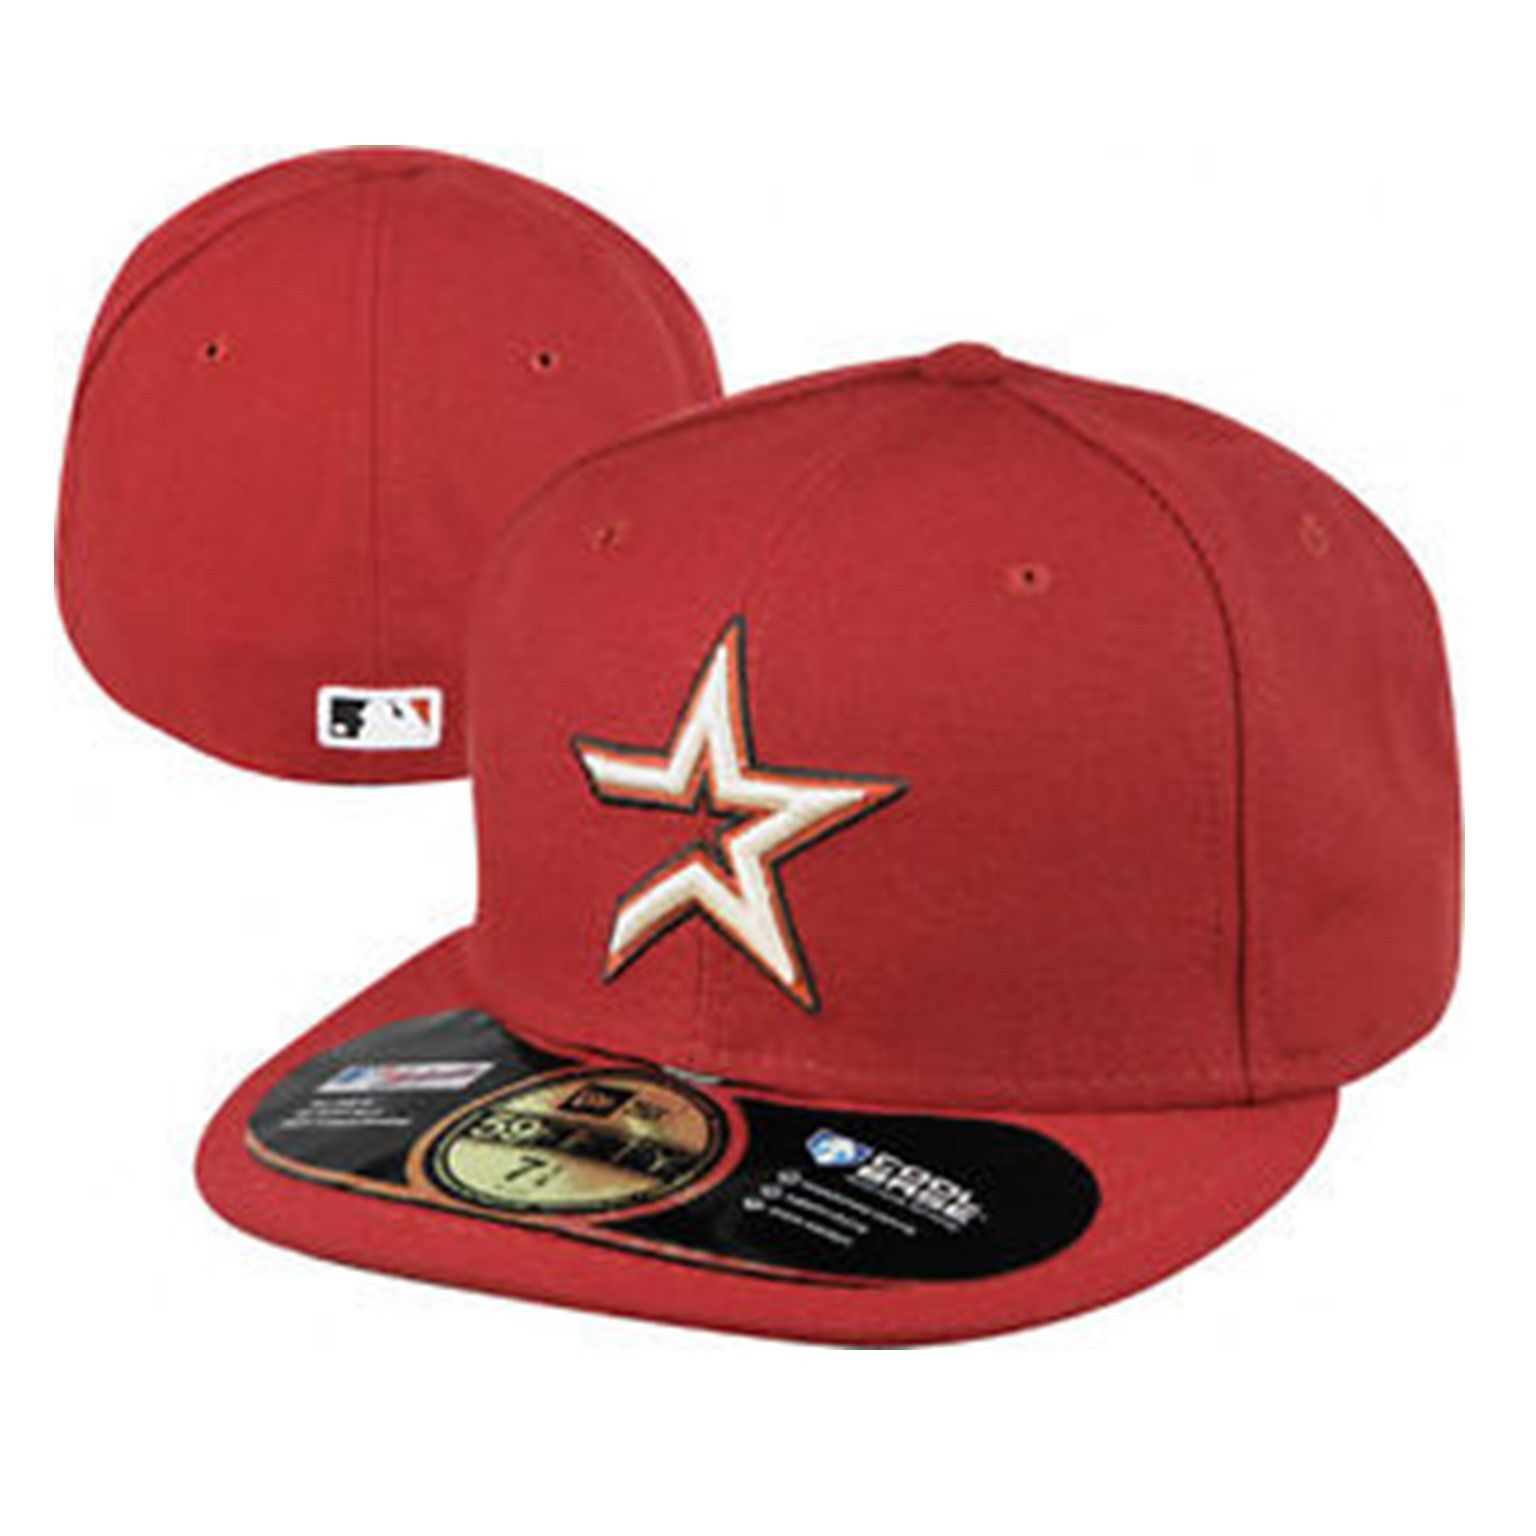 2ac83ca63c8 Houston Astros Team Logo New Era 59fifty Cool Base Fitted Hat Crimson